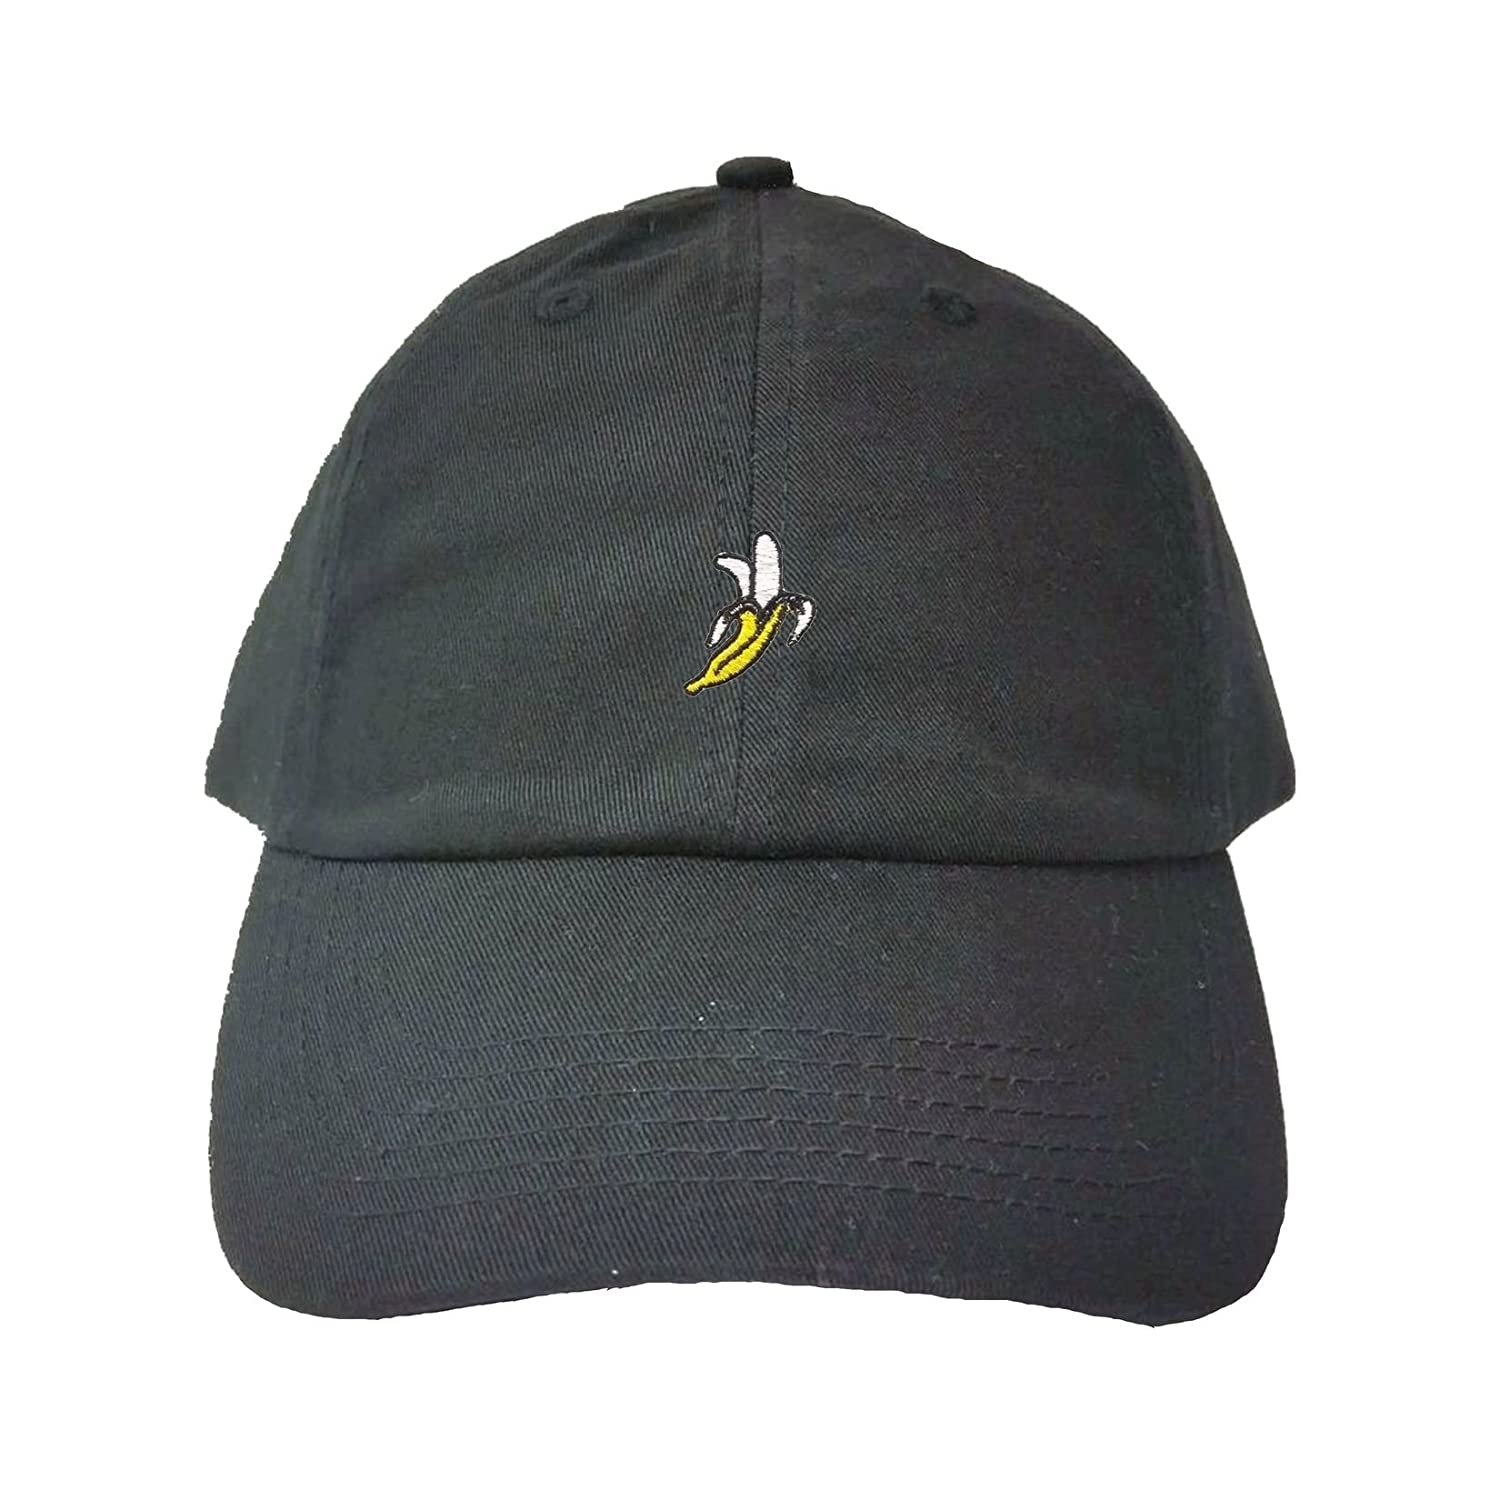 cb720807 Amazon.com: Go All Out Adjustable Black Adult Banana Embroidered Dad Hat:  Clothing